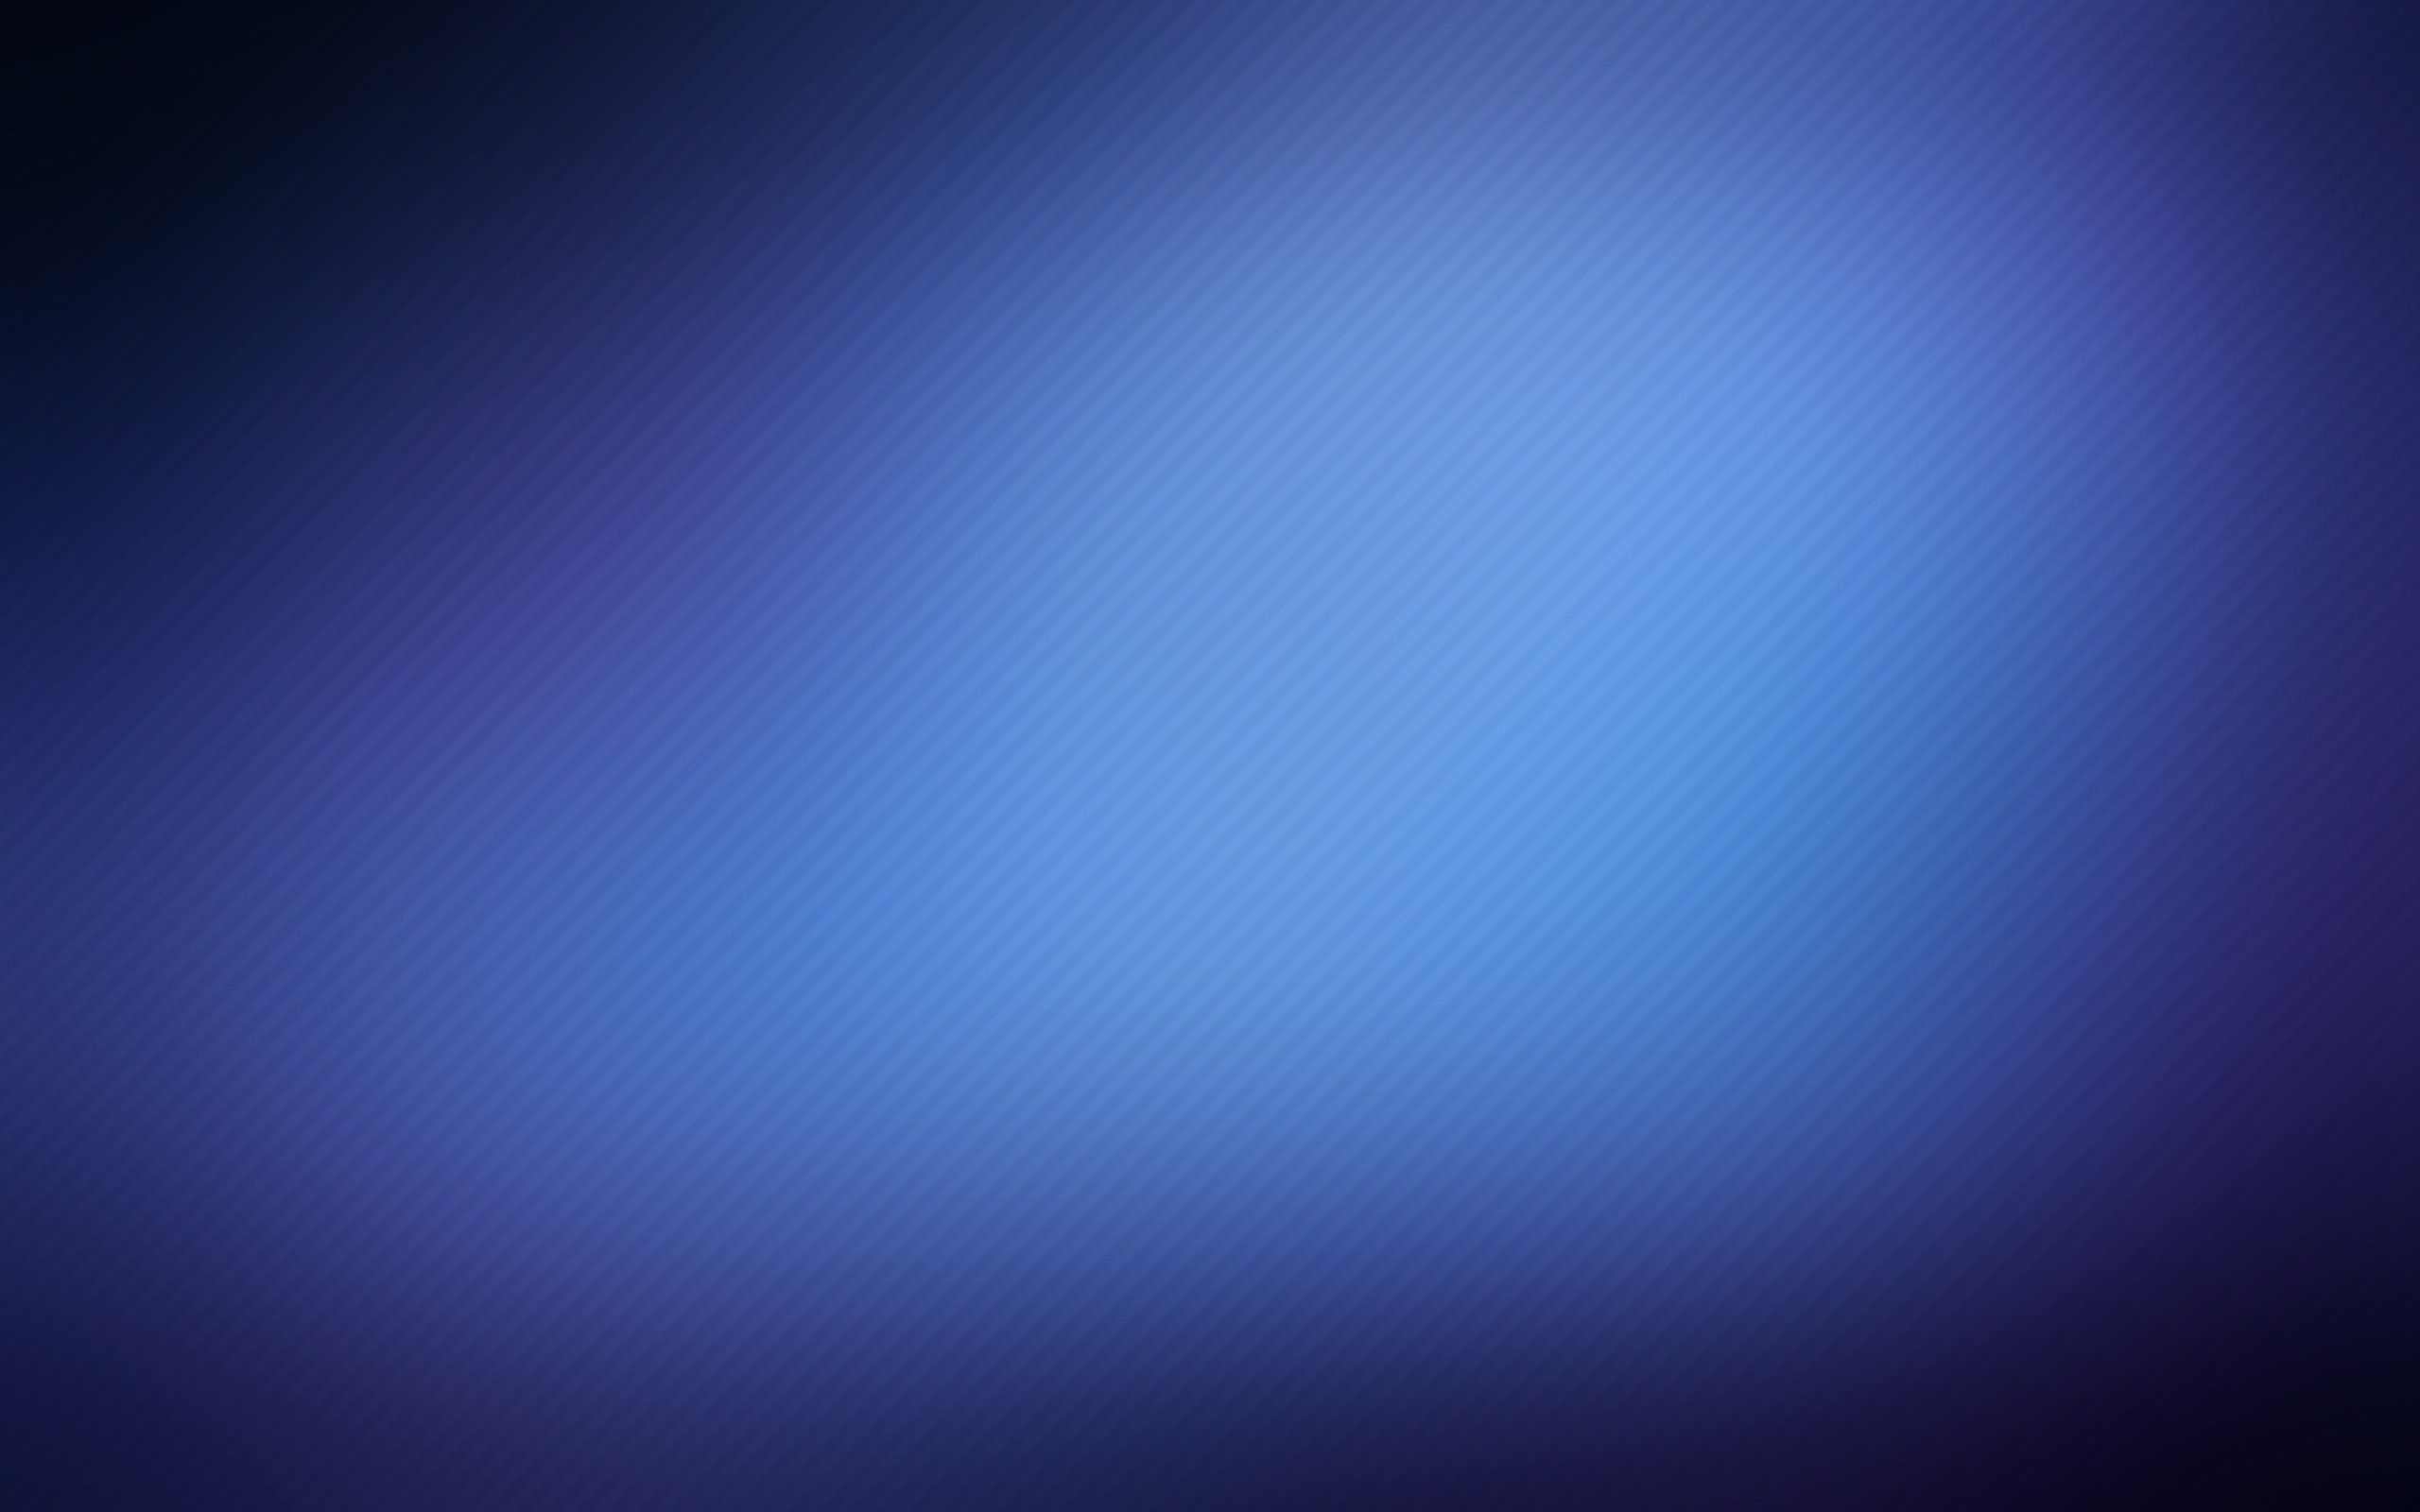 Plain Background Wallpapers Hd Free Blue Background Wallpapers Background Hd Wallpaper Iphone Wallpaper Lights Dark blue plain wallpaper hd